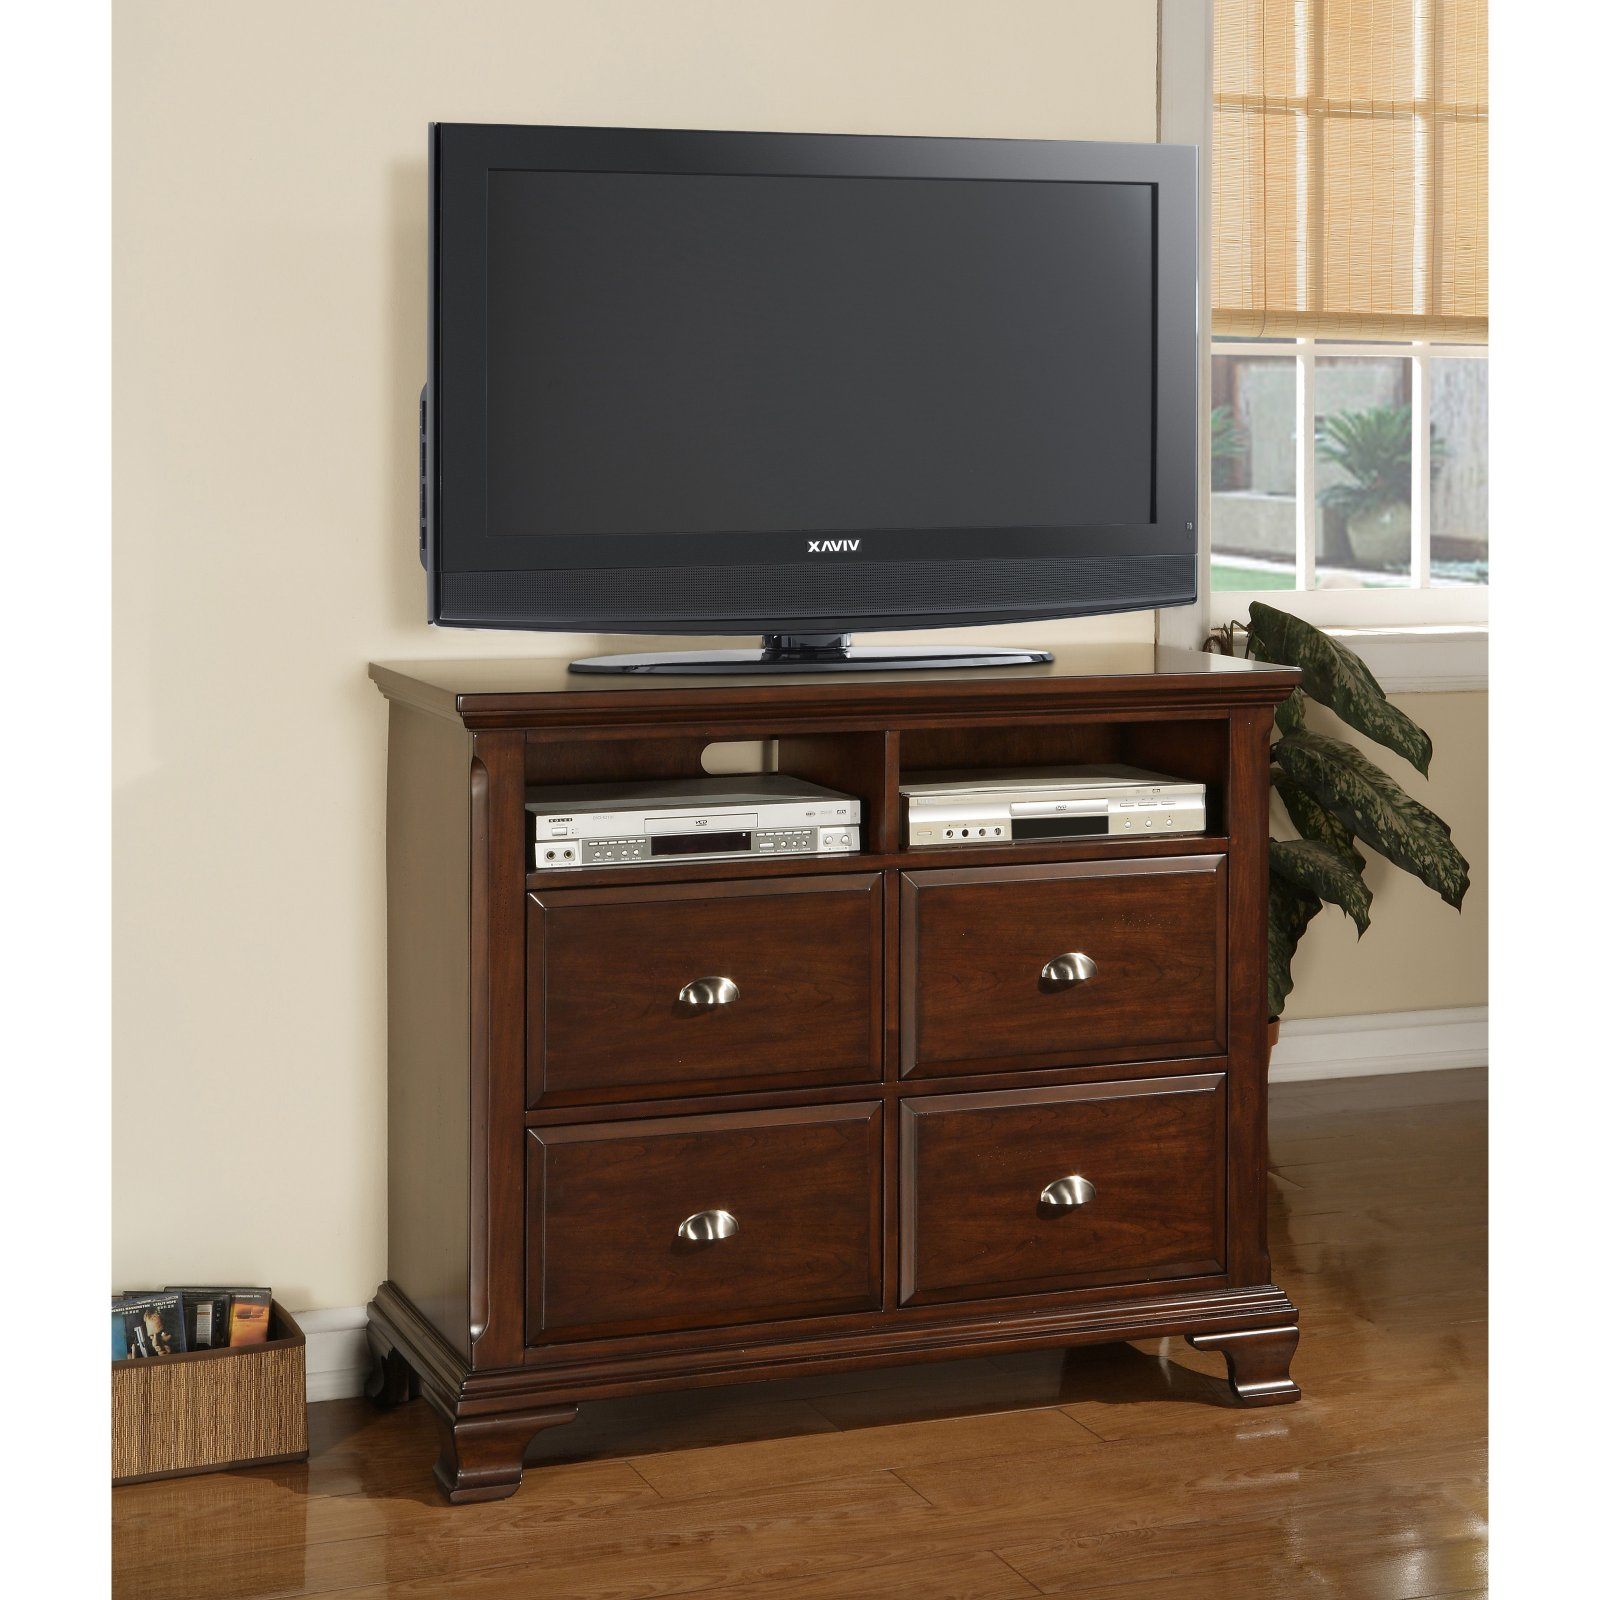 Picket House Furnishings Canton 4 Drawer Media Chest Deep Cherry by Elements